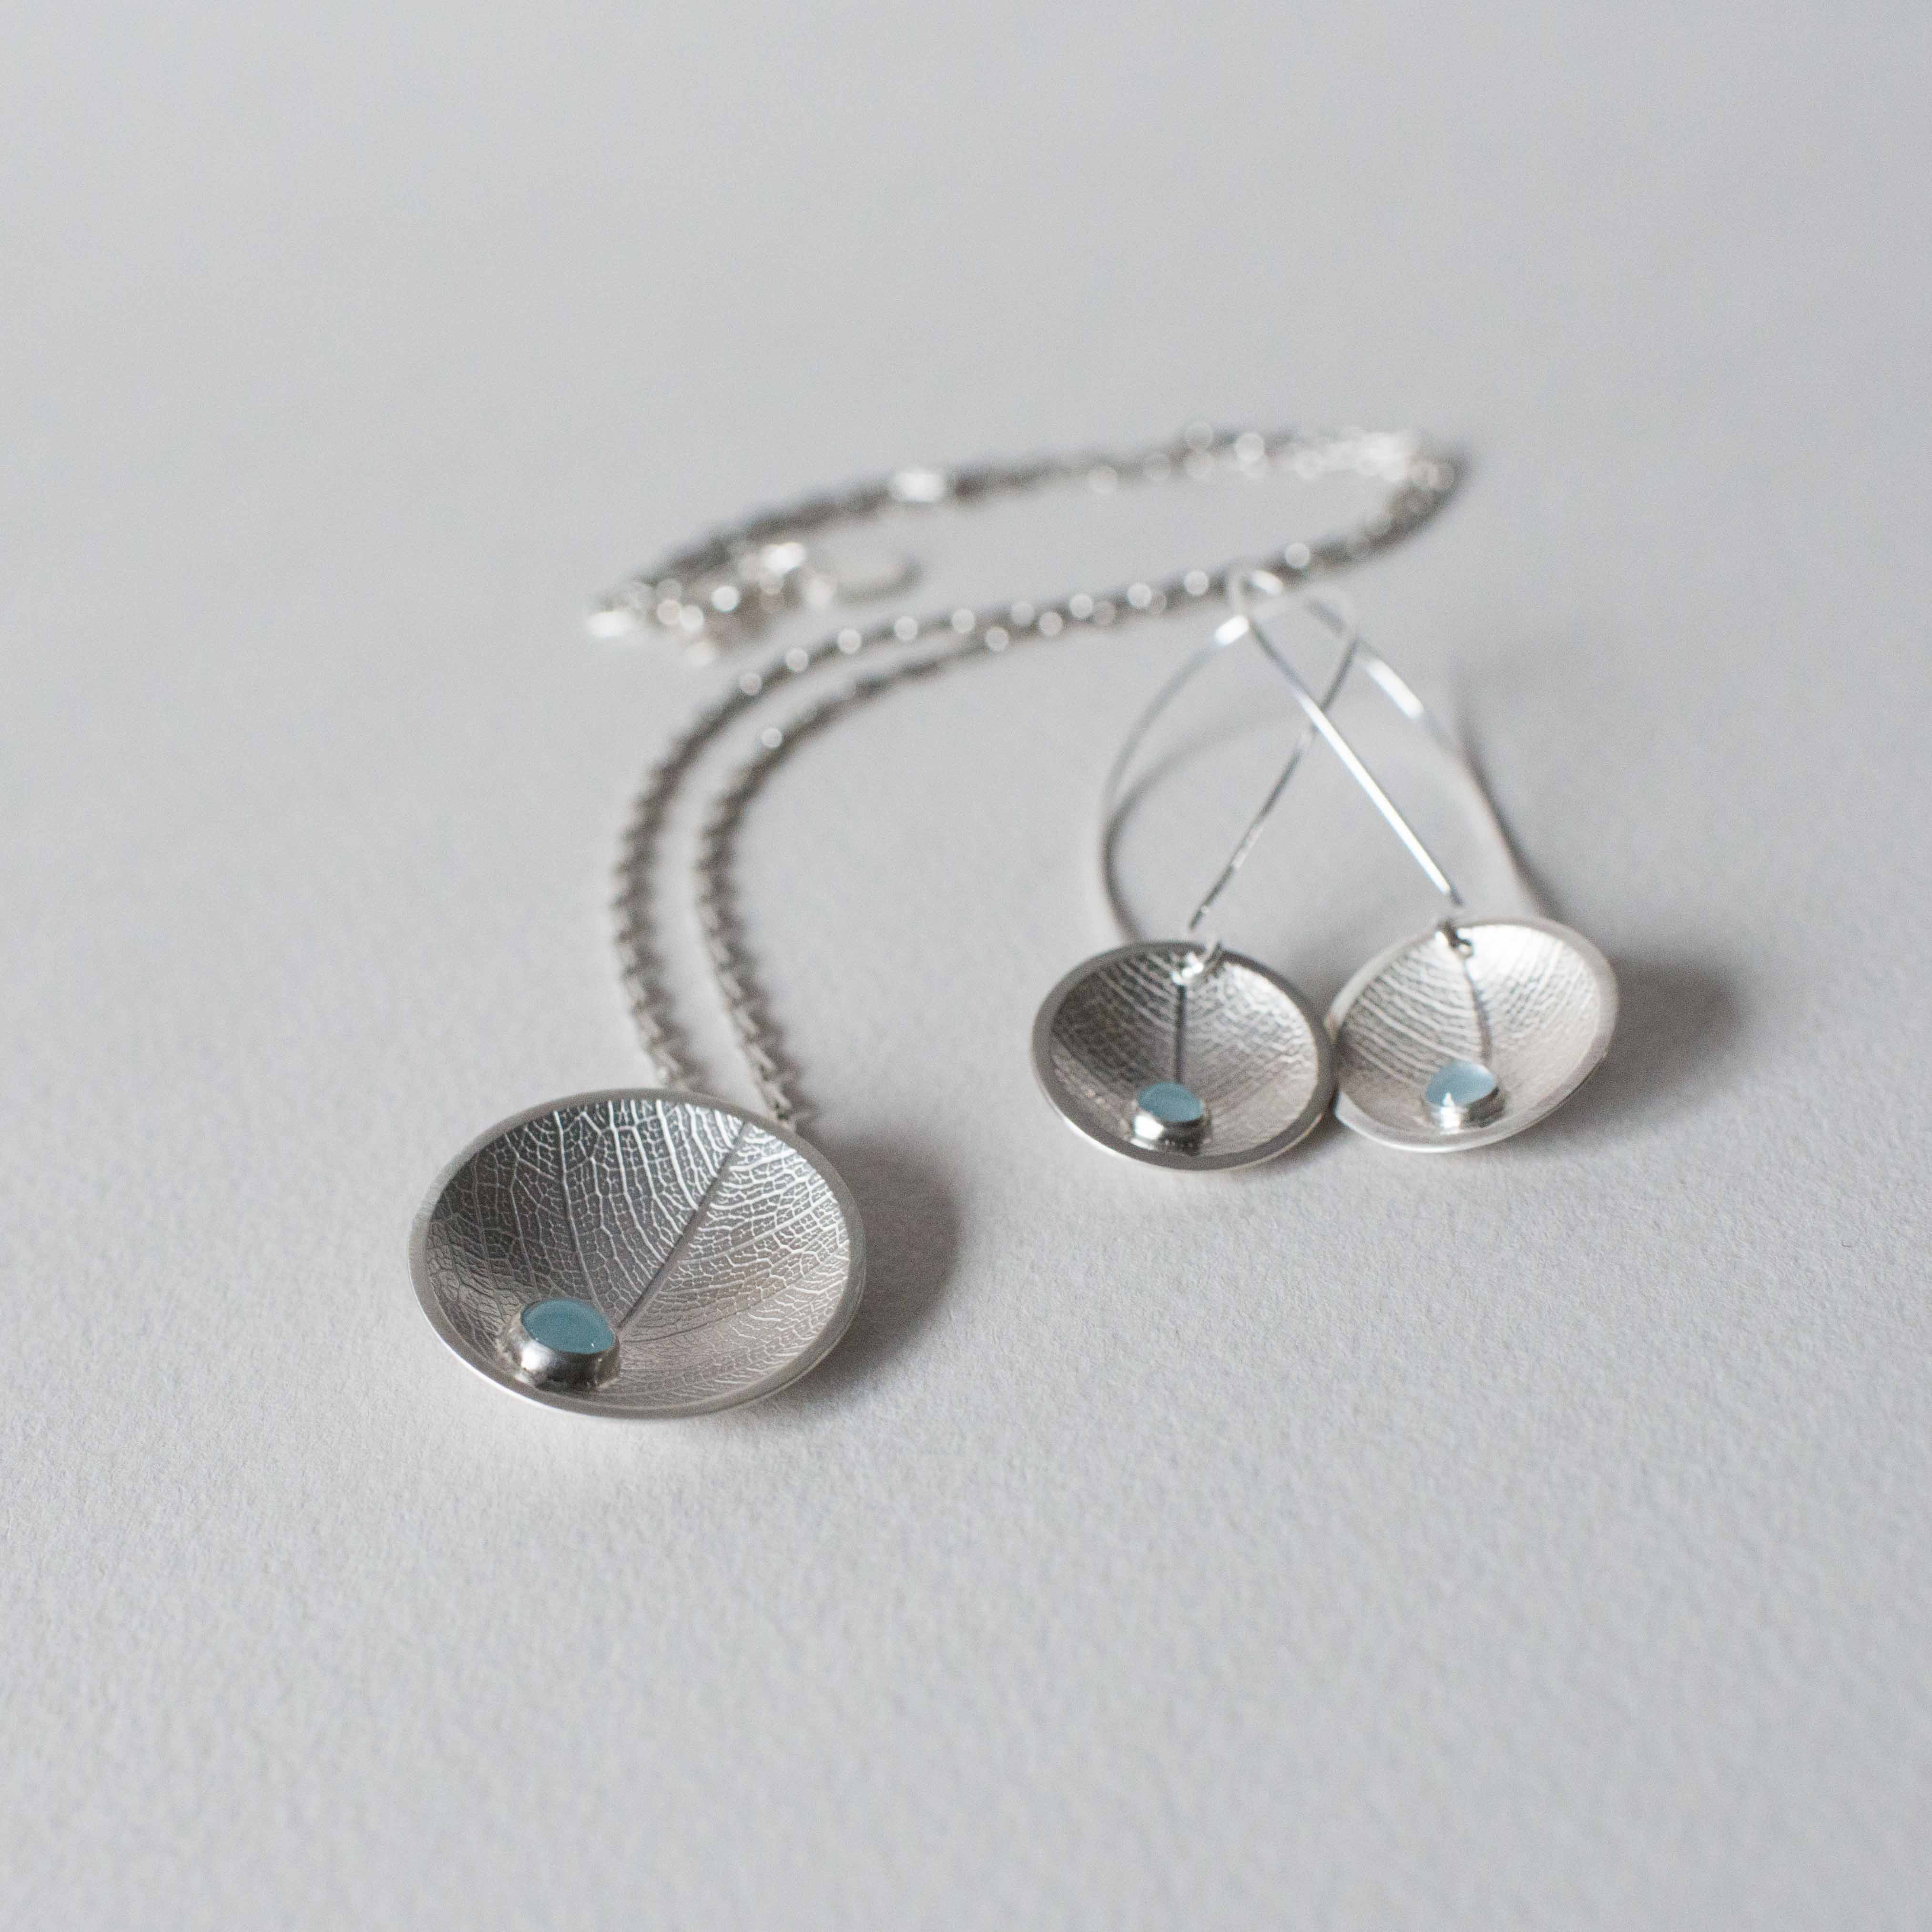 Dewdrop necklace and earrings